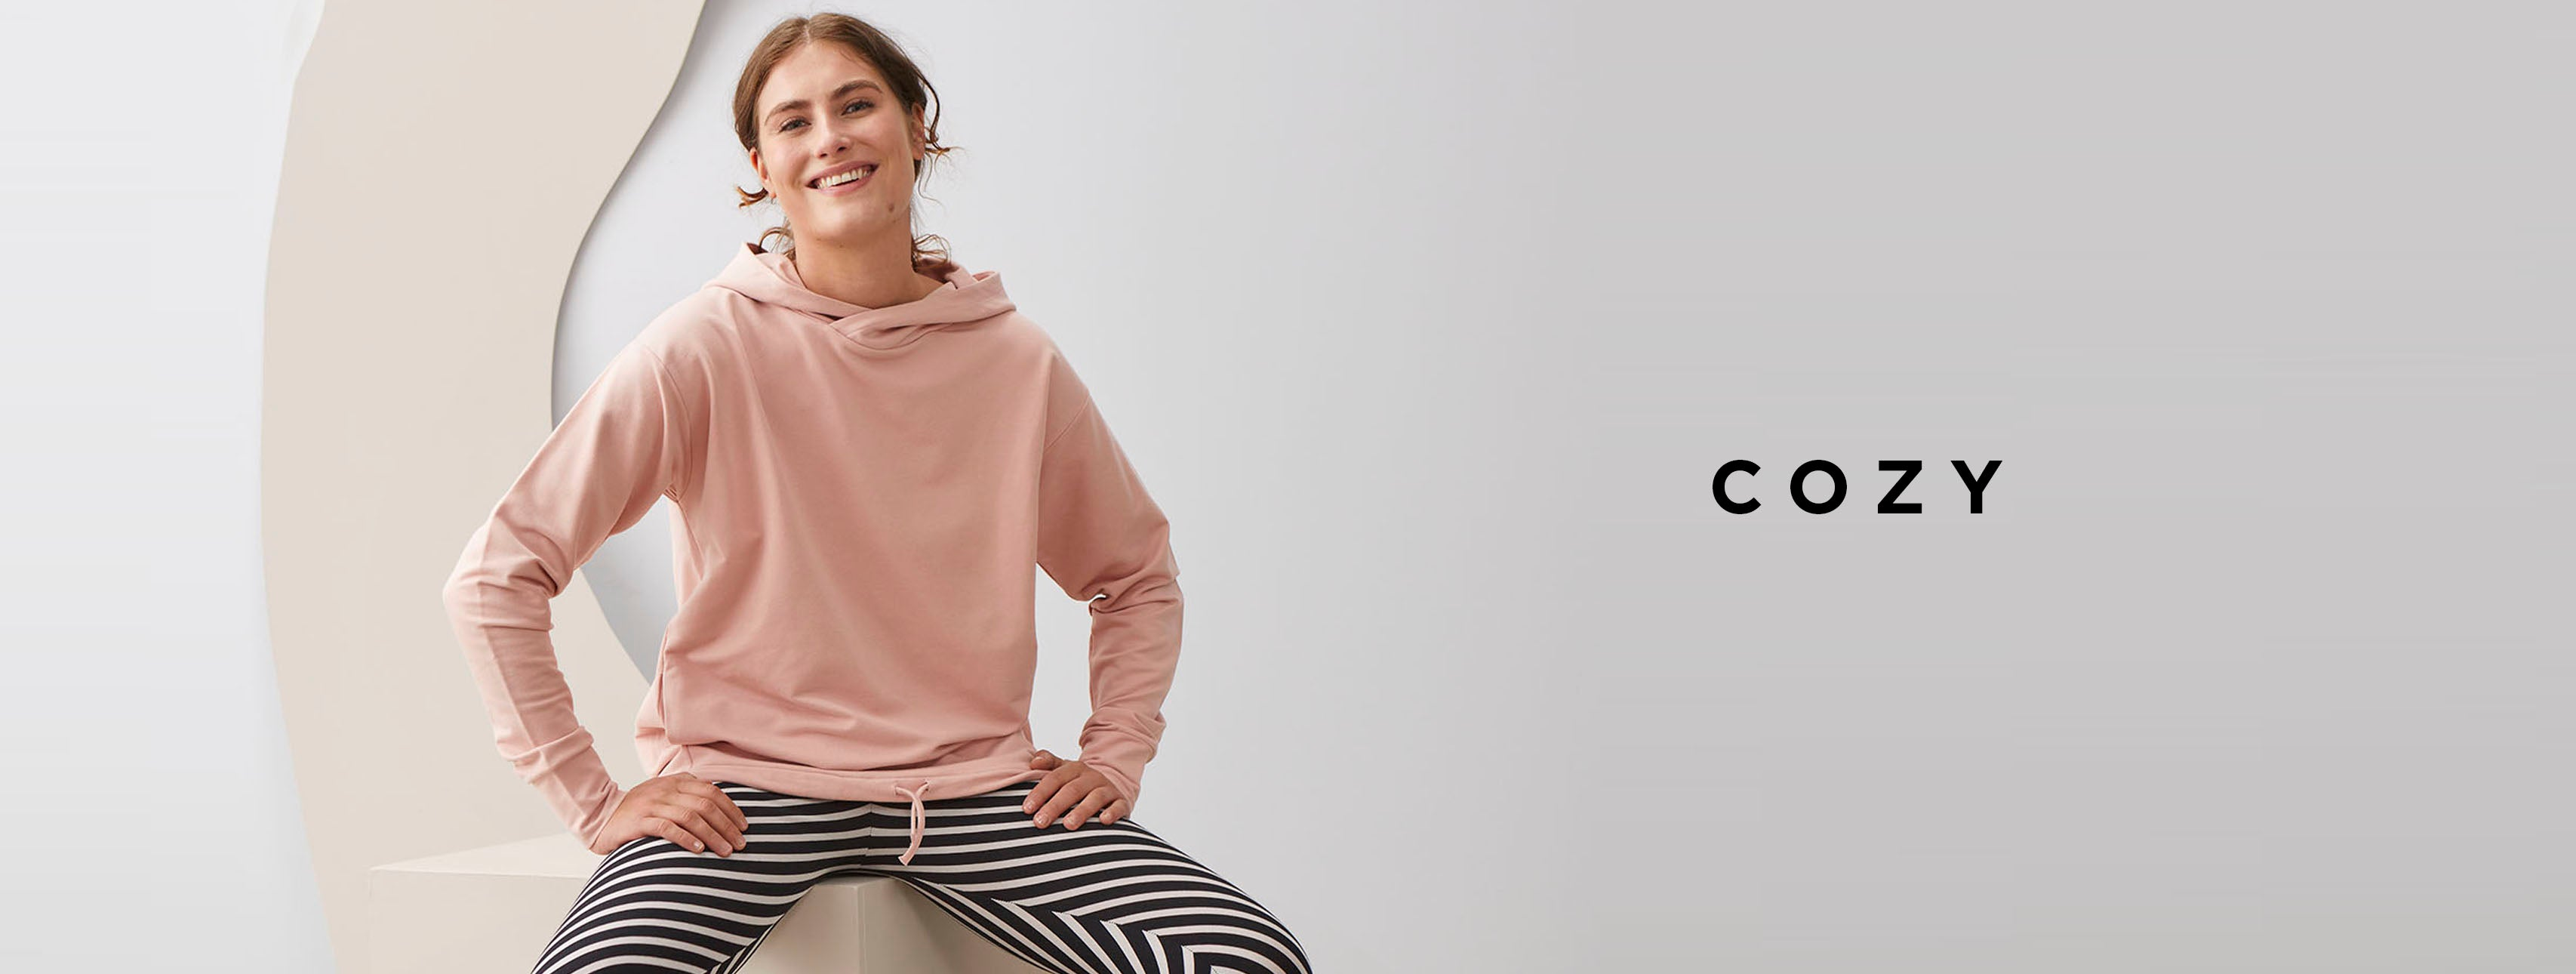 Papu Design womens collection cozy style designed in finland